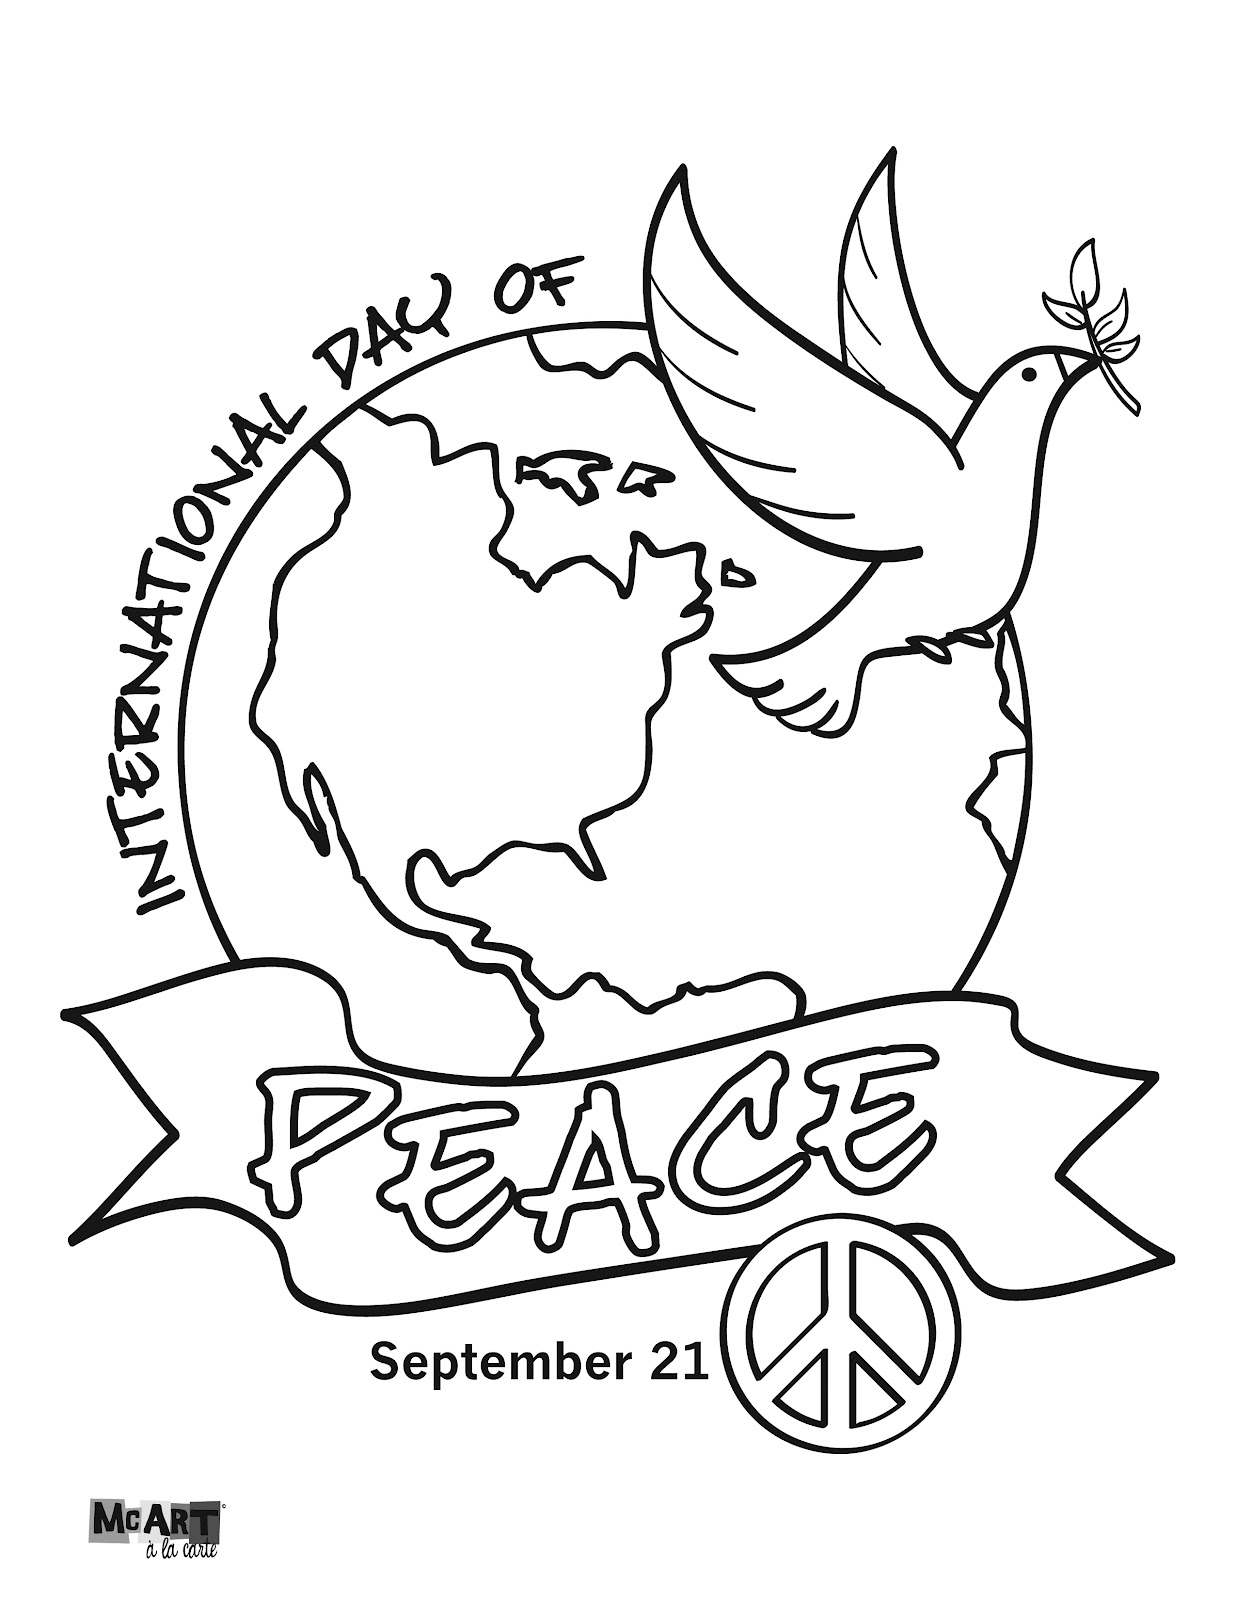 World Peace Coloring Pages 14 Image Colorings Net Peace Day Coloring Pages